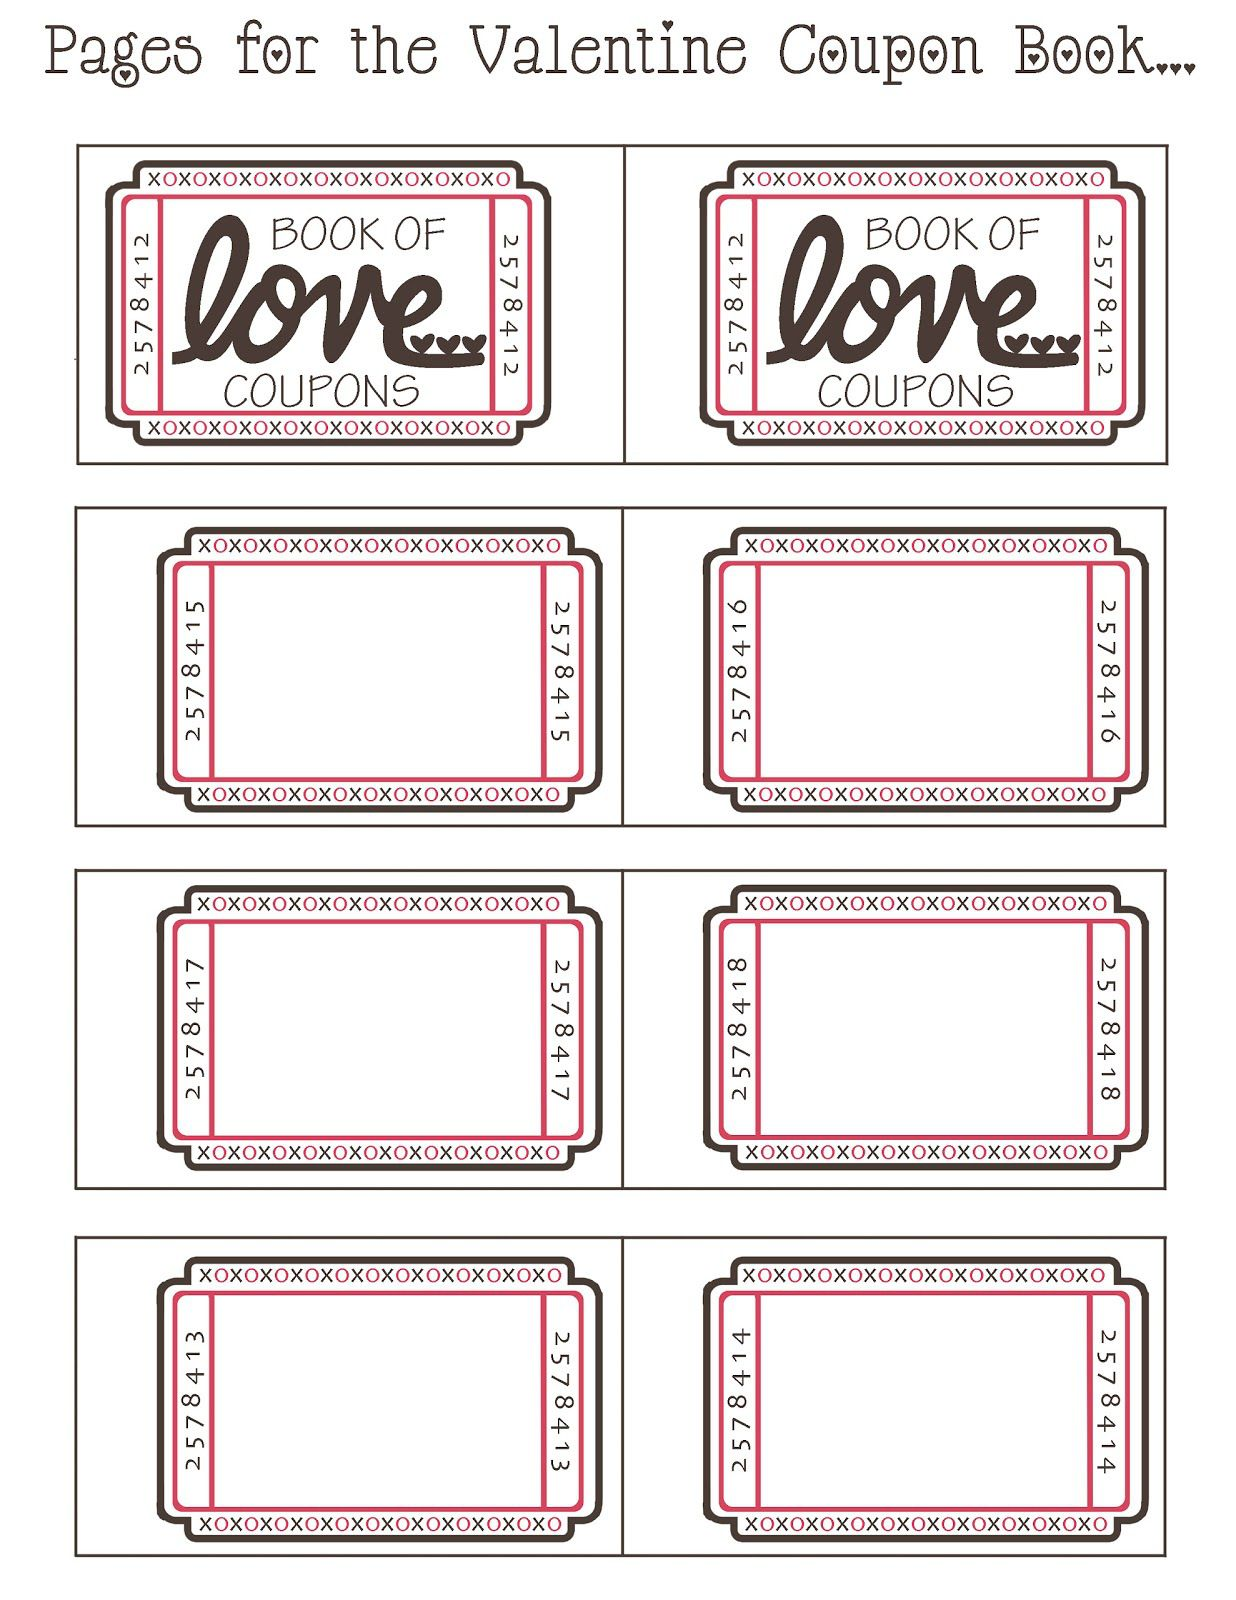 Coupon book ideas for husband blank love coupon templates for Coupon book template for husband